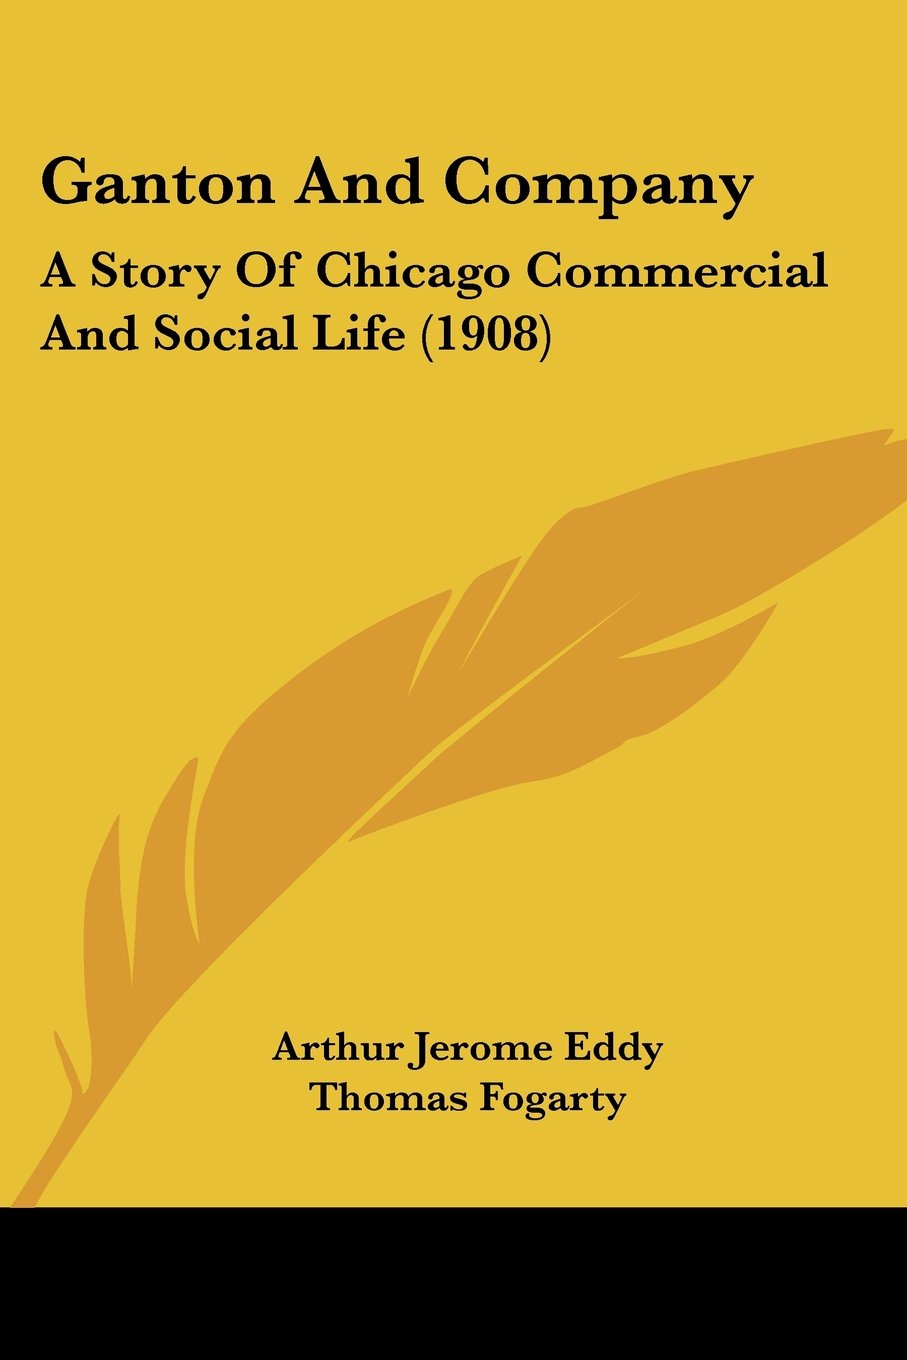 Ganton And Company: A Story Of Chicago Commercial And Social Life (1908) pdf